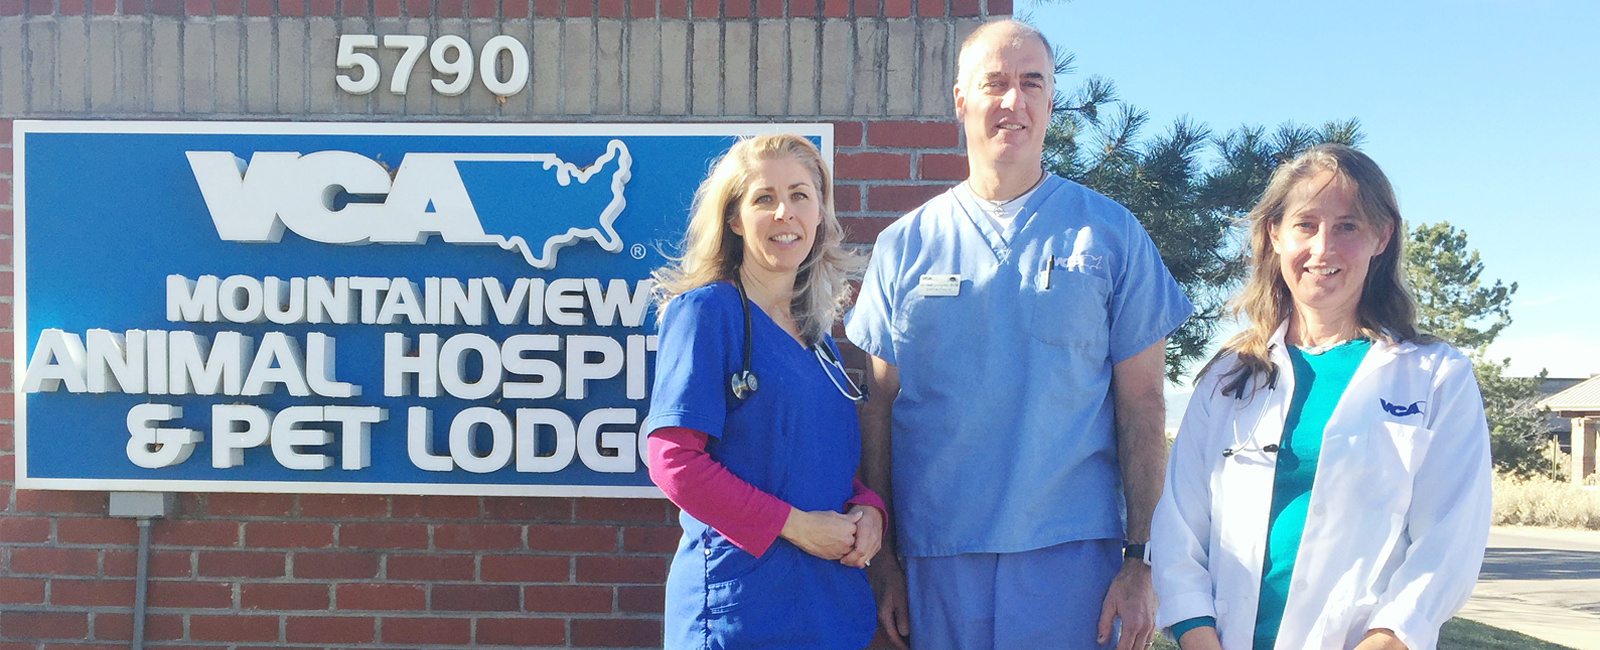 Team Picture of VCA Mountainview Animal Hospital & Pet Lodge